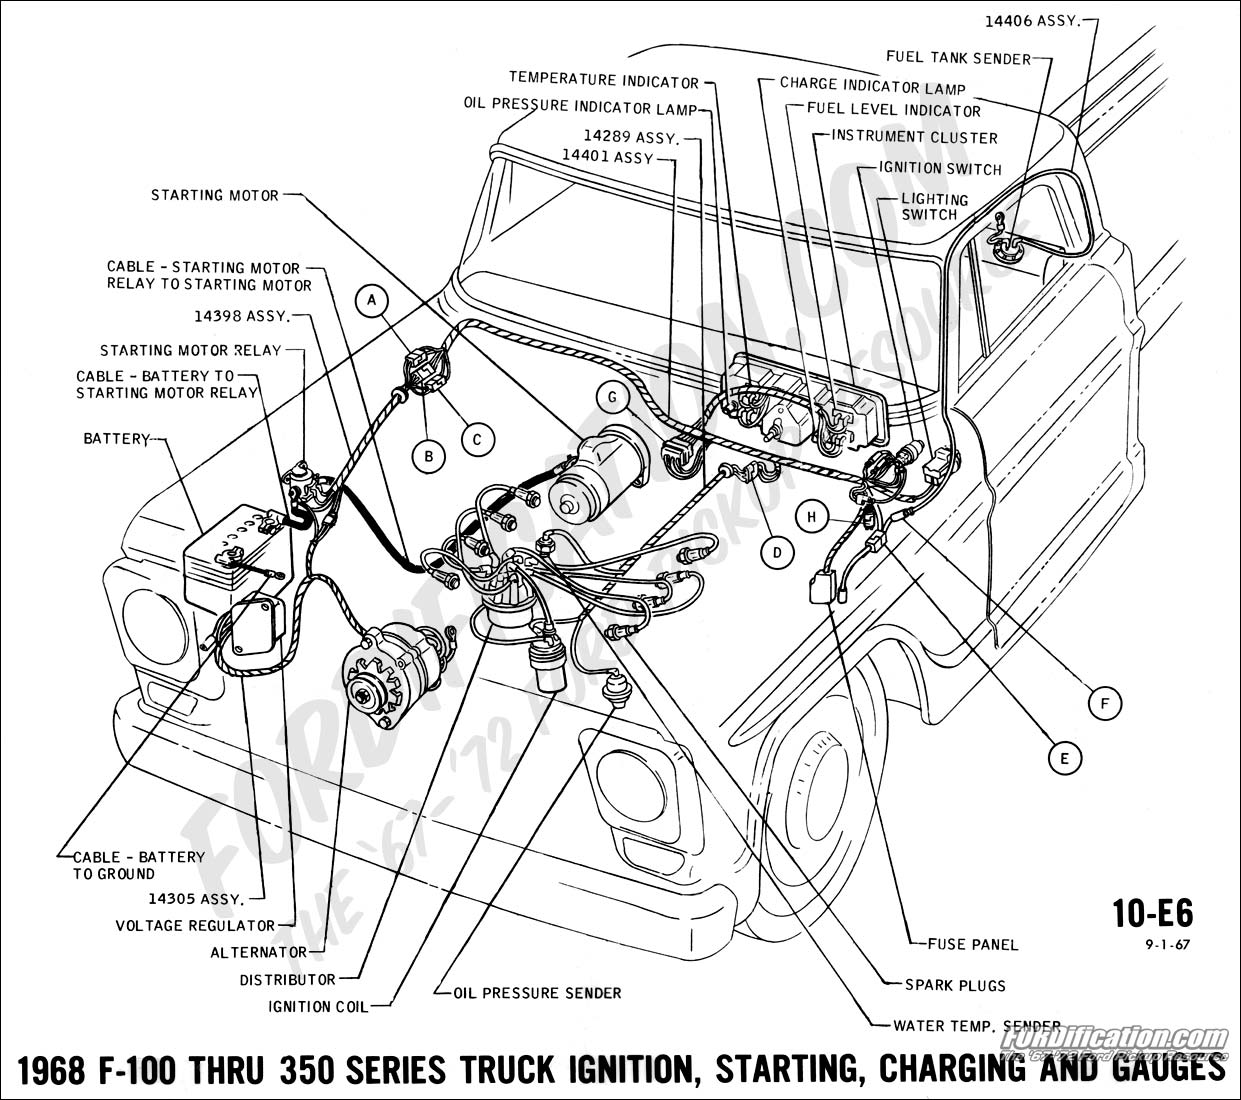 Ford Truck Technical Drawings And Schematics Section H Wiring Code 7 Way Car End Color Gage Circuit Function Connector 1968 F 100 Thru 350 Ignition Starting Charging Gauges